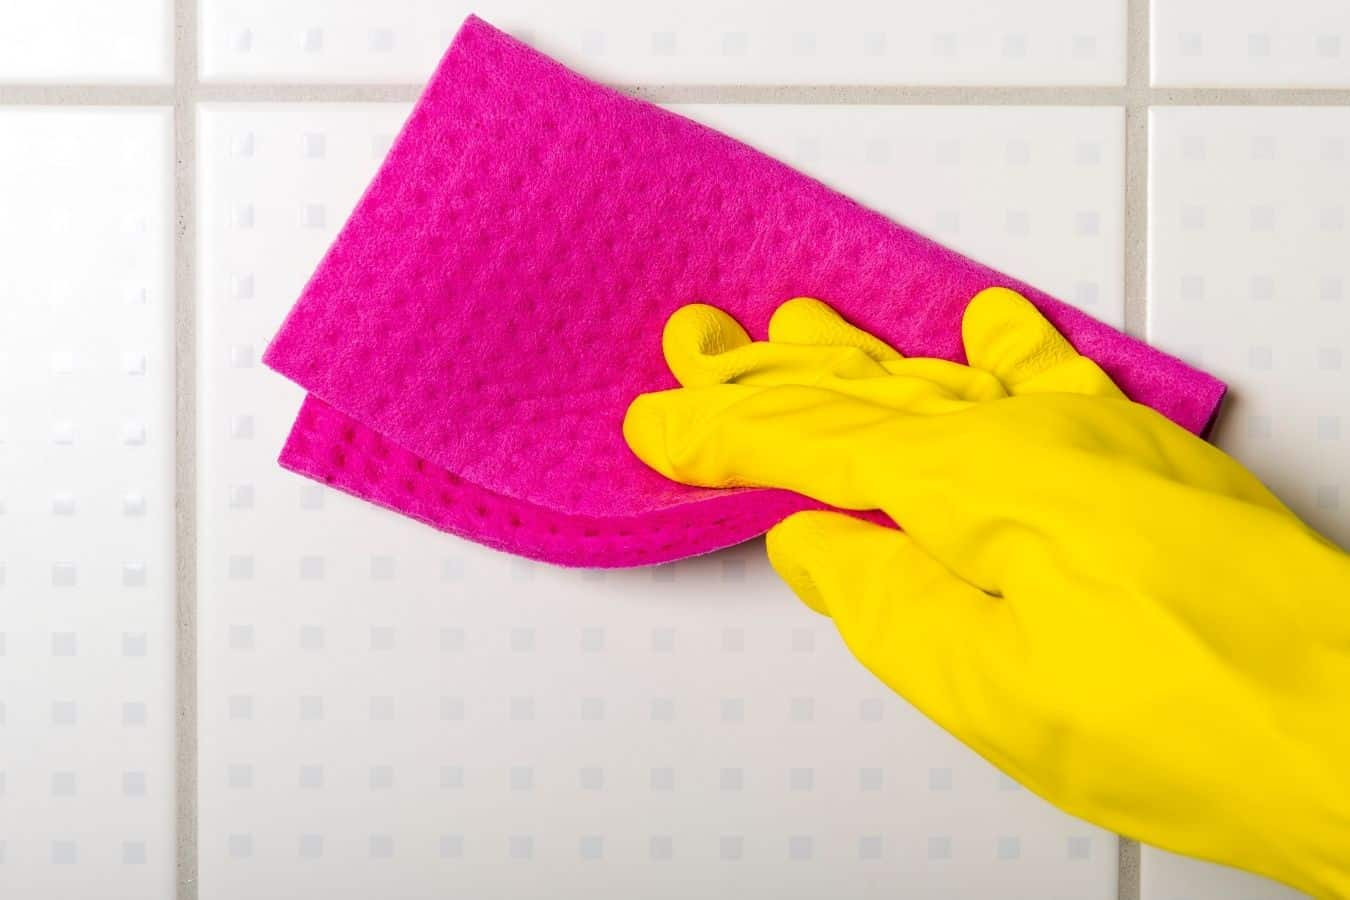 7 Ways To Remove Hair Dye Off Tile